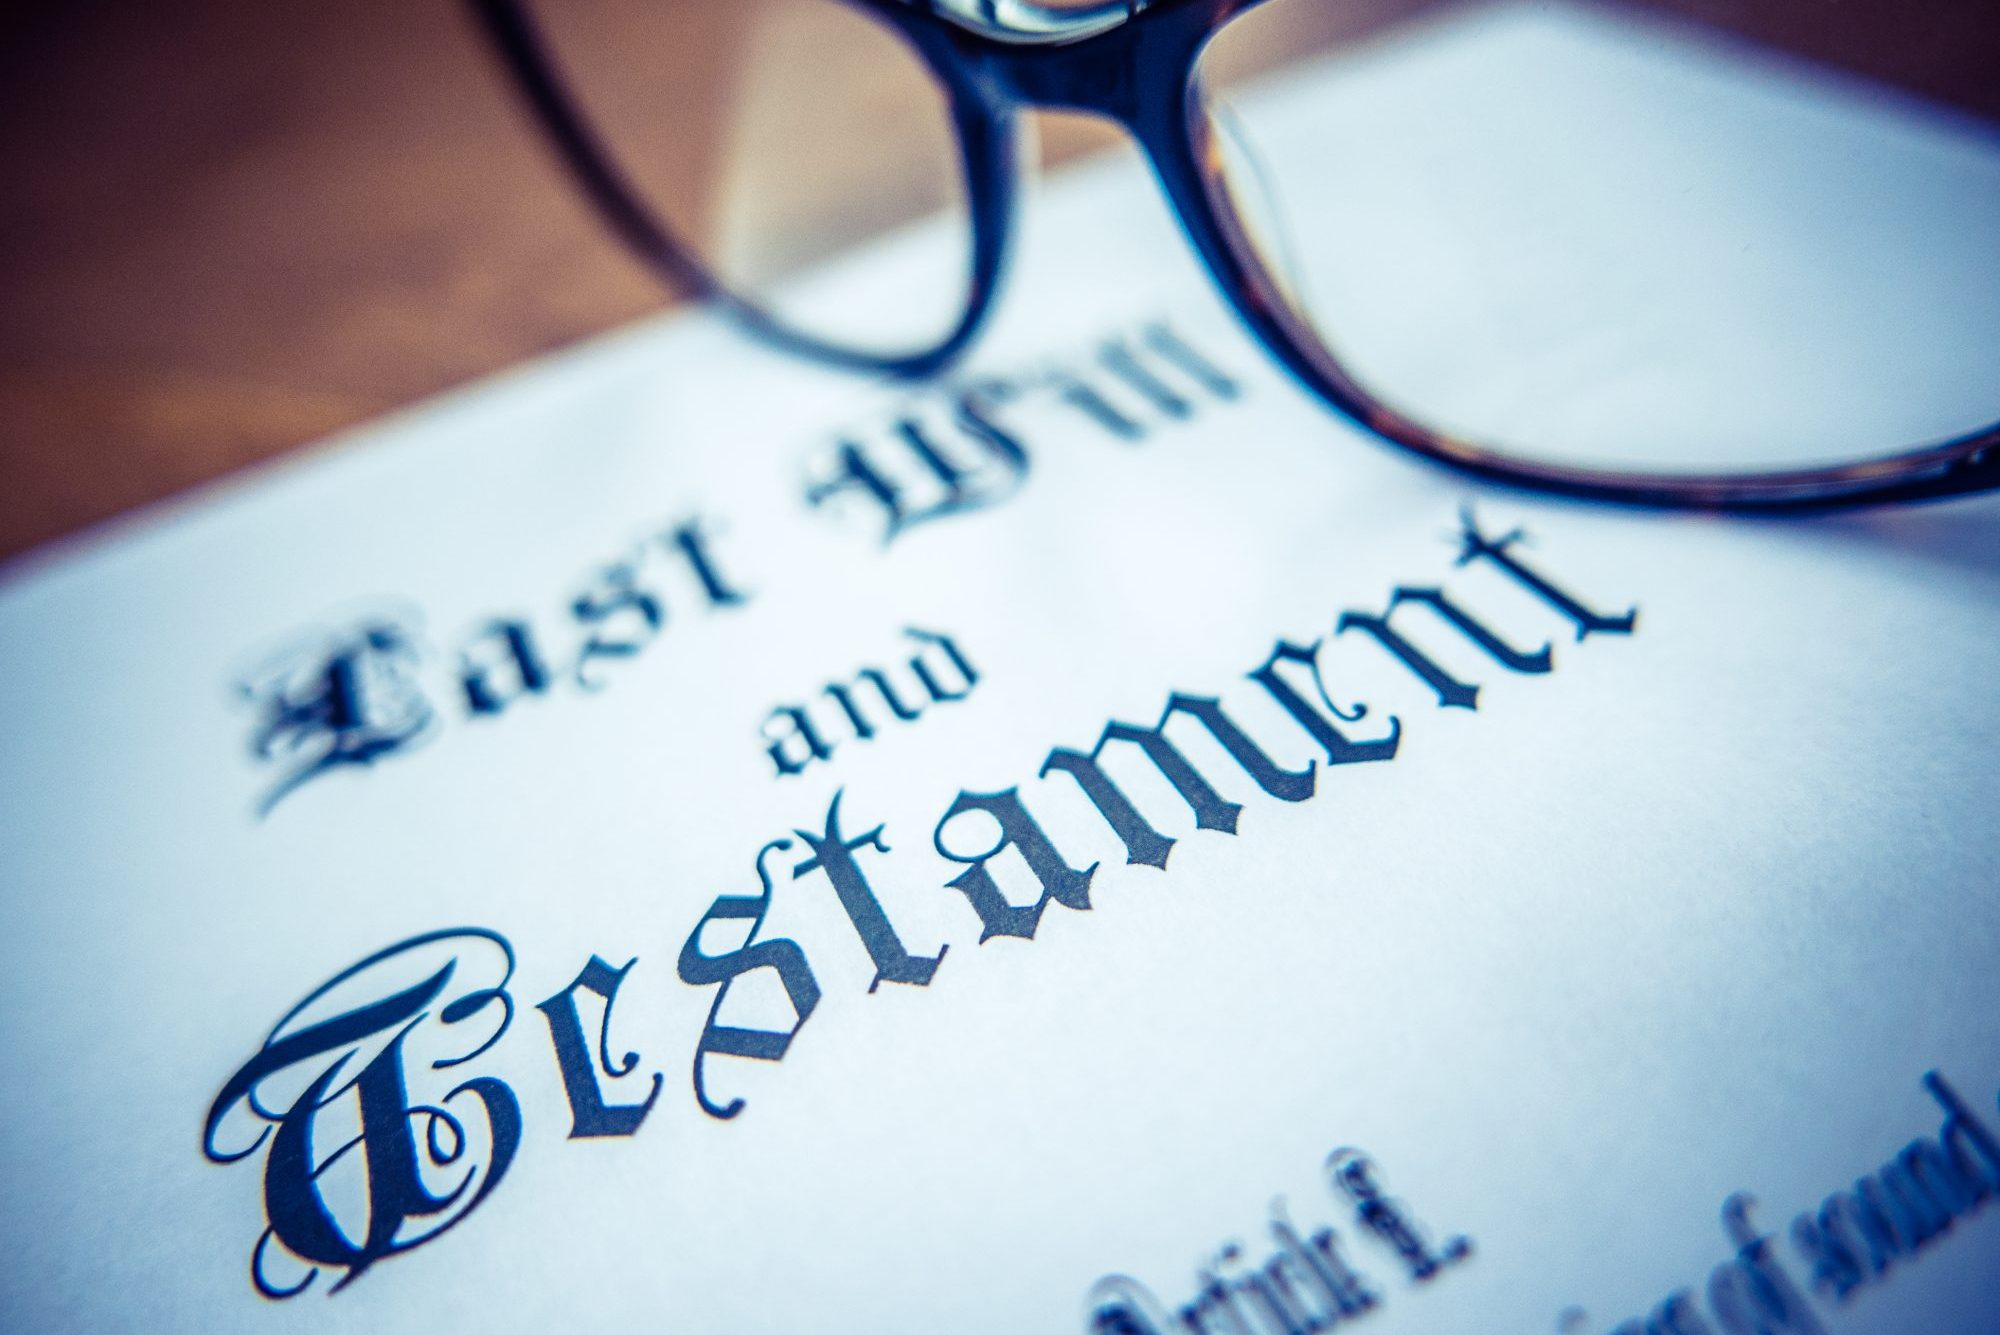 Probate Matters in Bristol TN Law Practice